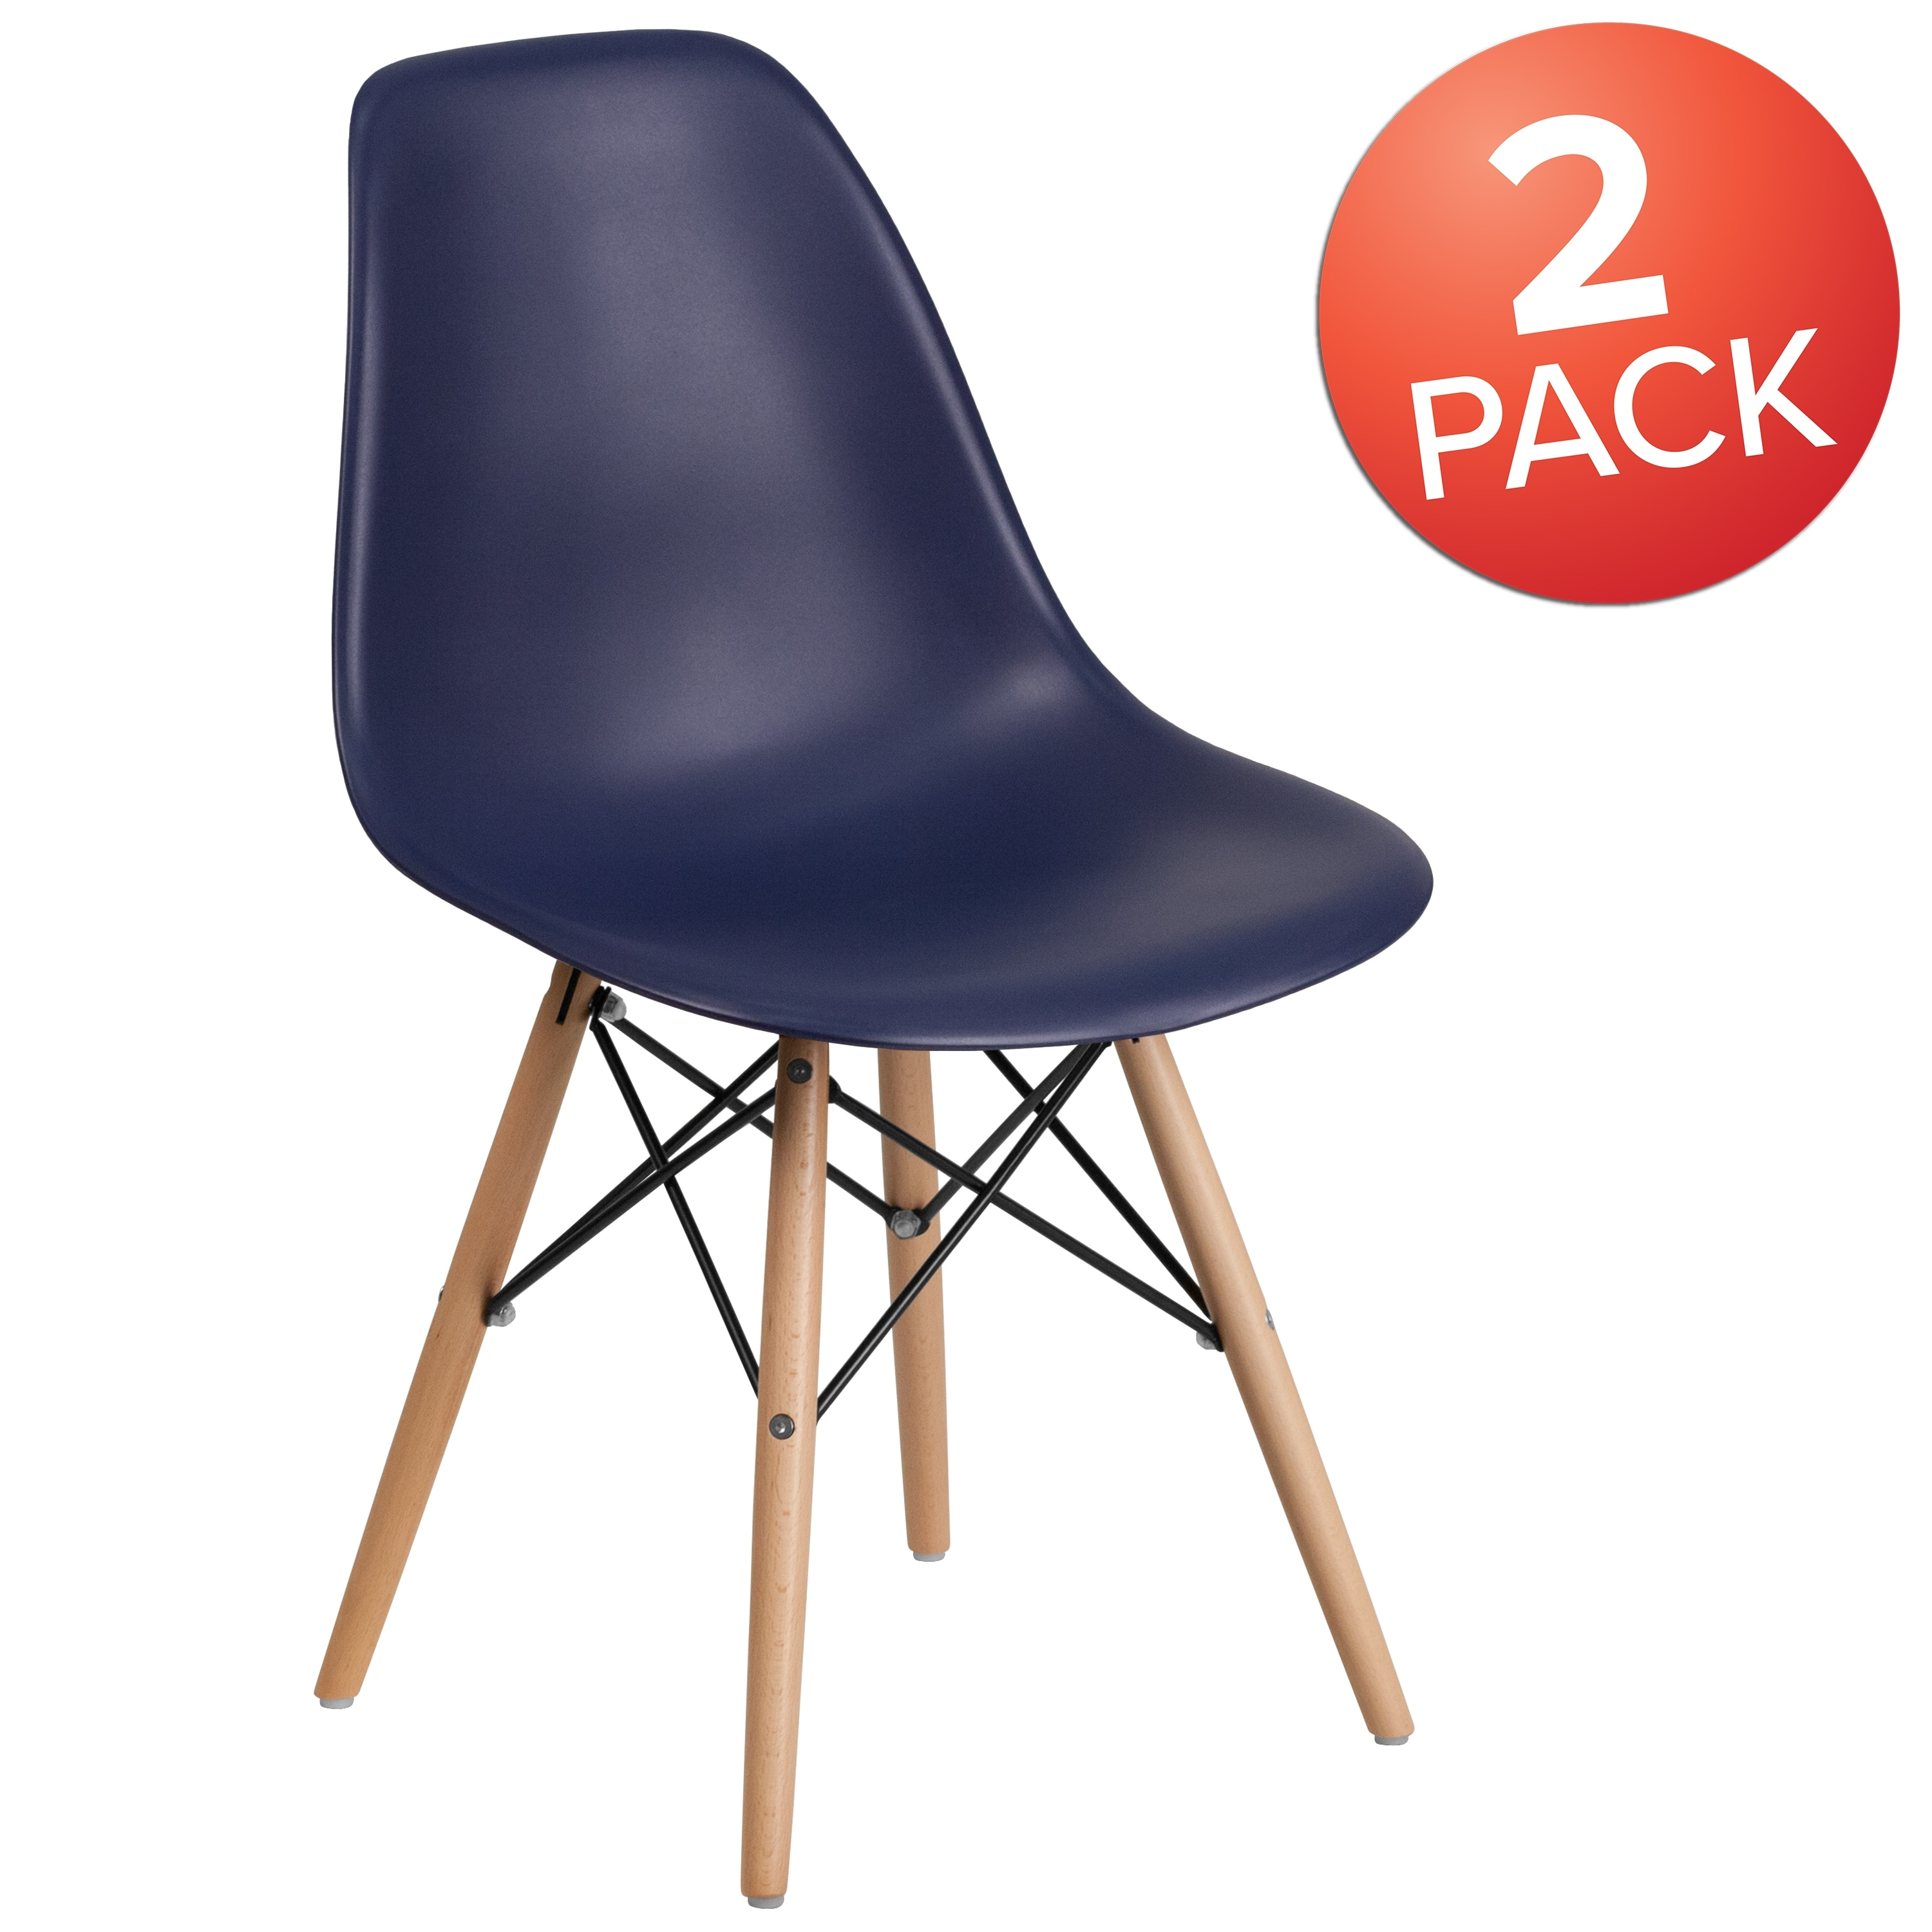 4PK Plastic Chair with Wooden Legs - Hospitality Seating - Side Chair